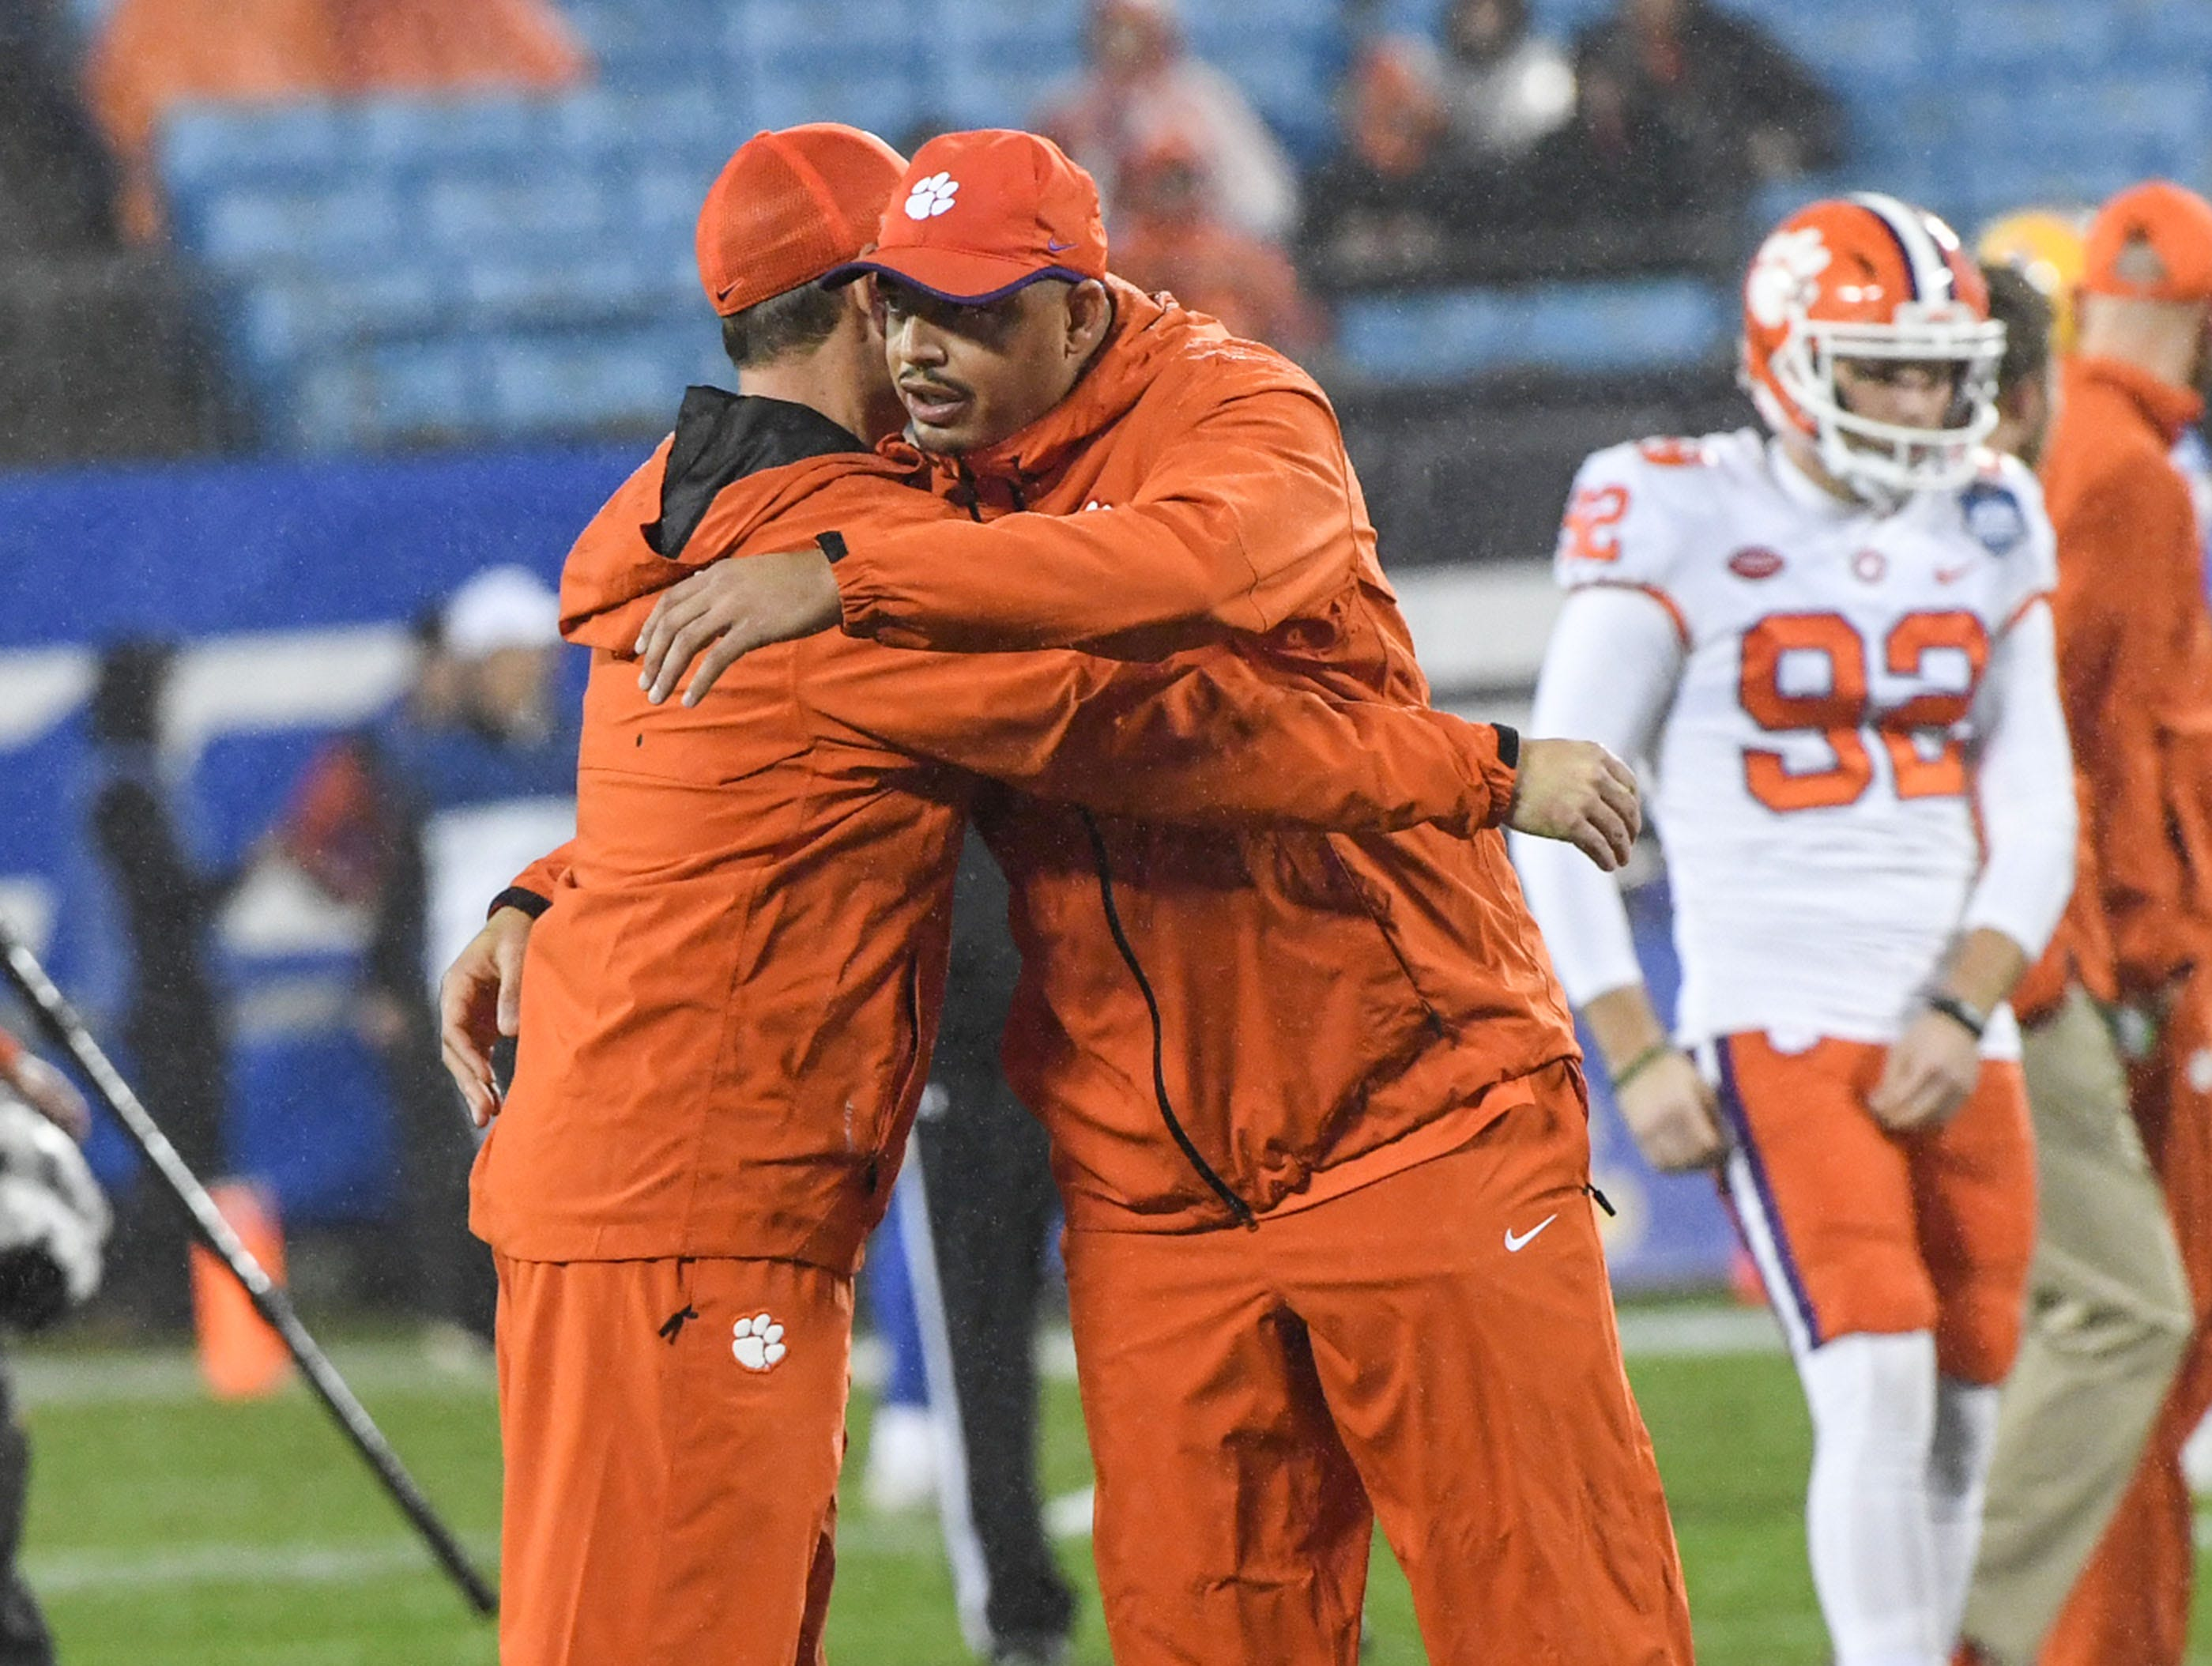 Clemson Head Coach Dabo Swinney and co-offensive coordinator Tony Elliott hug before the game of the Dr. Pepper ACC football championship at Bank of America Stadium in Charlotte, N.C. on Saturday, December 1, 2018.